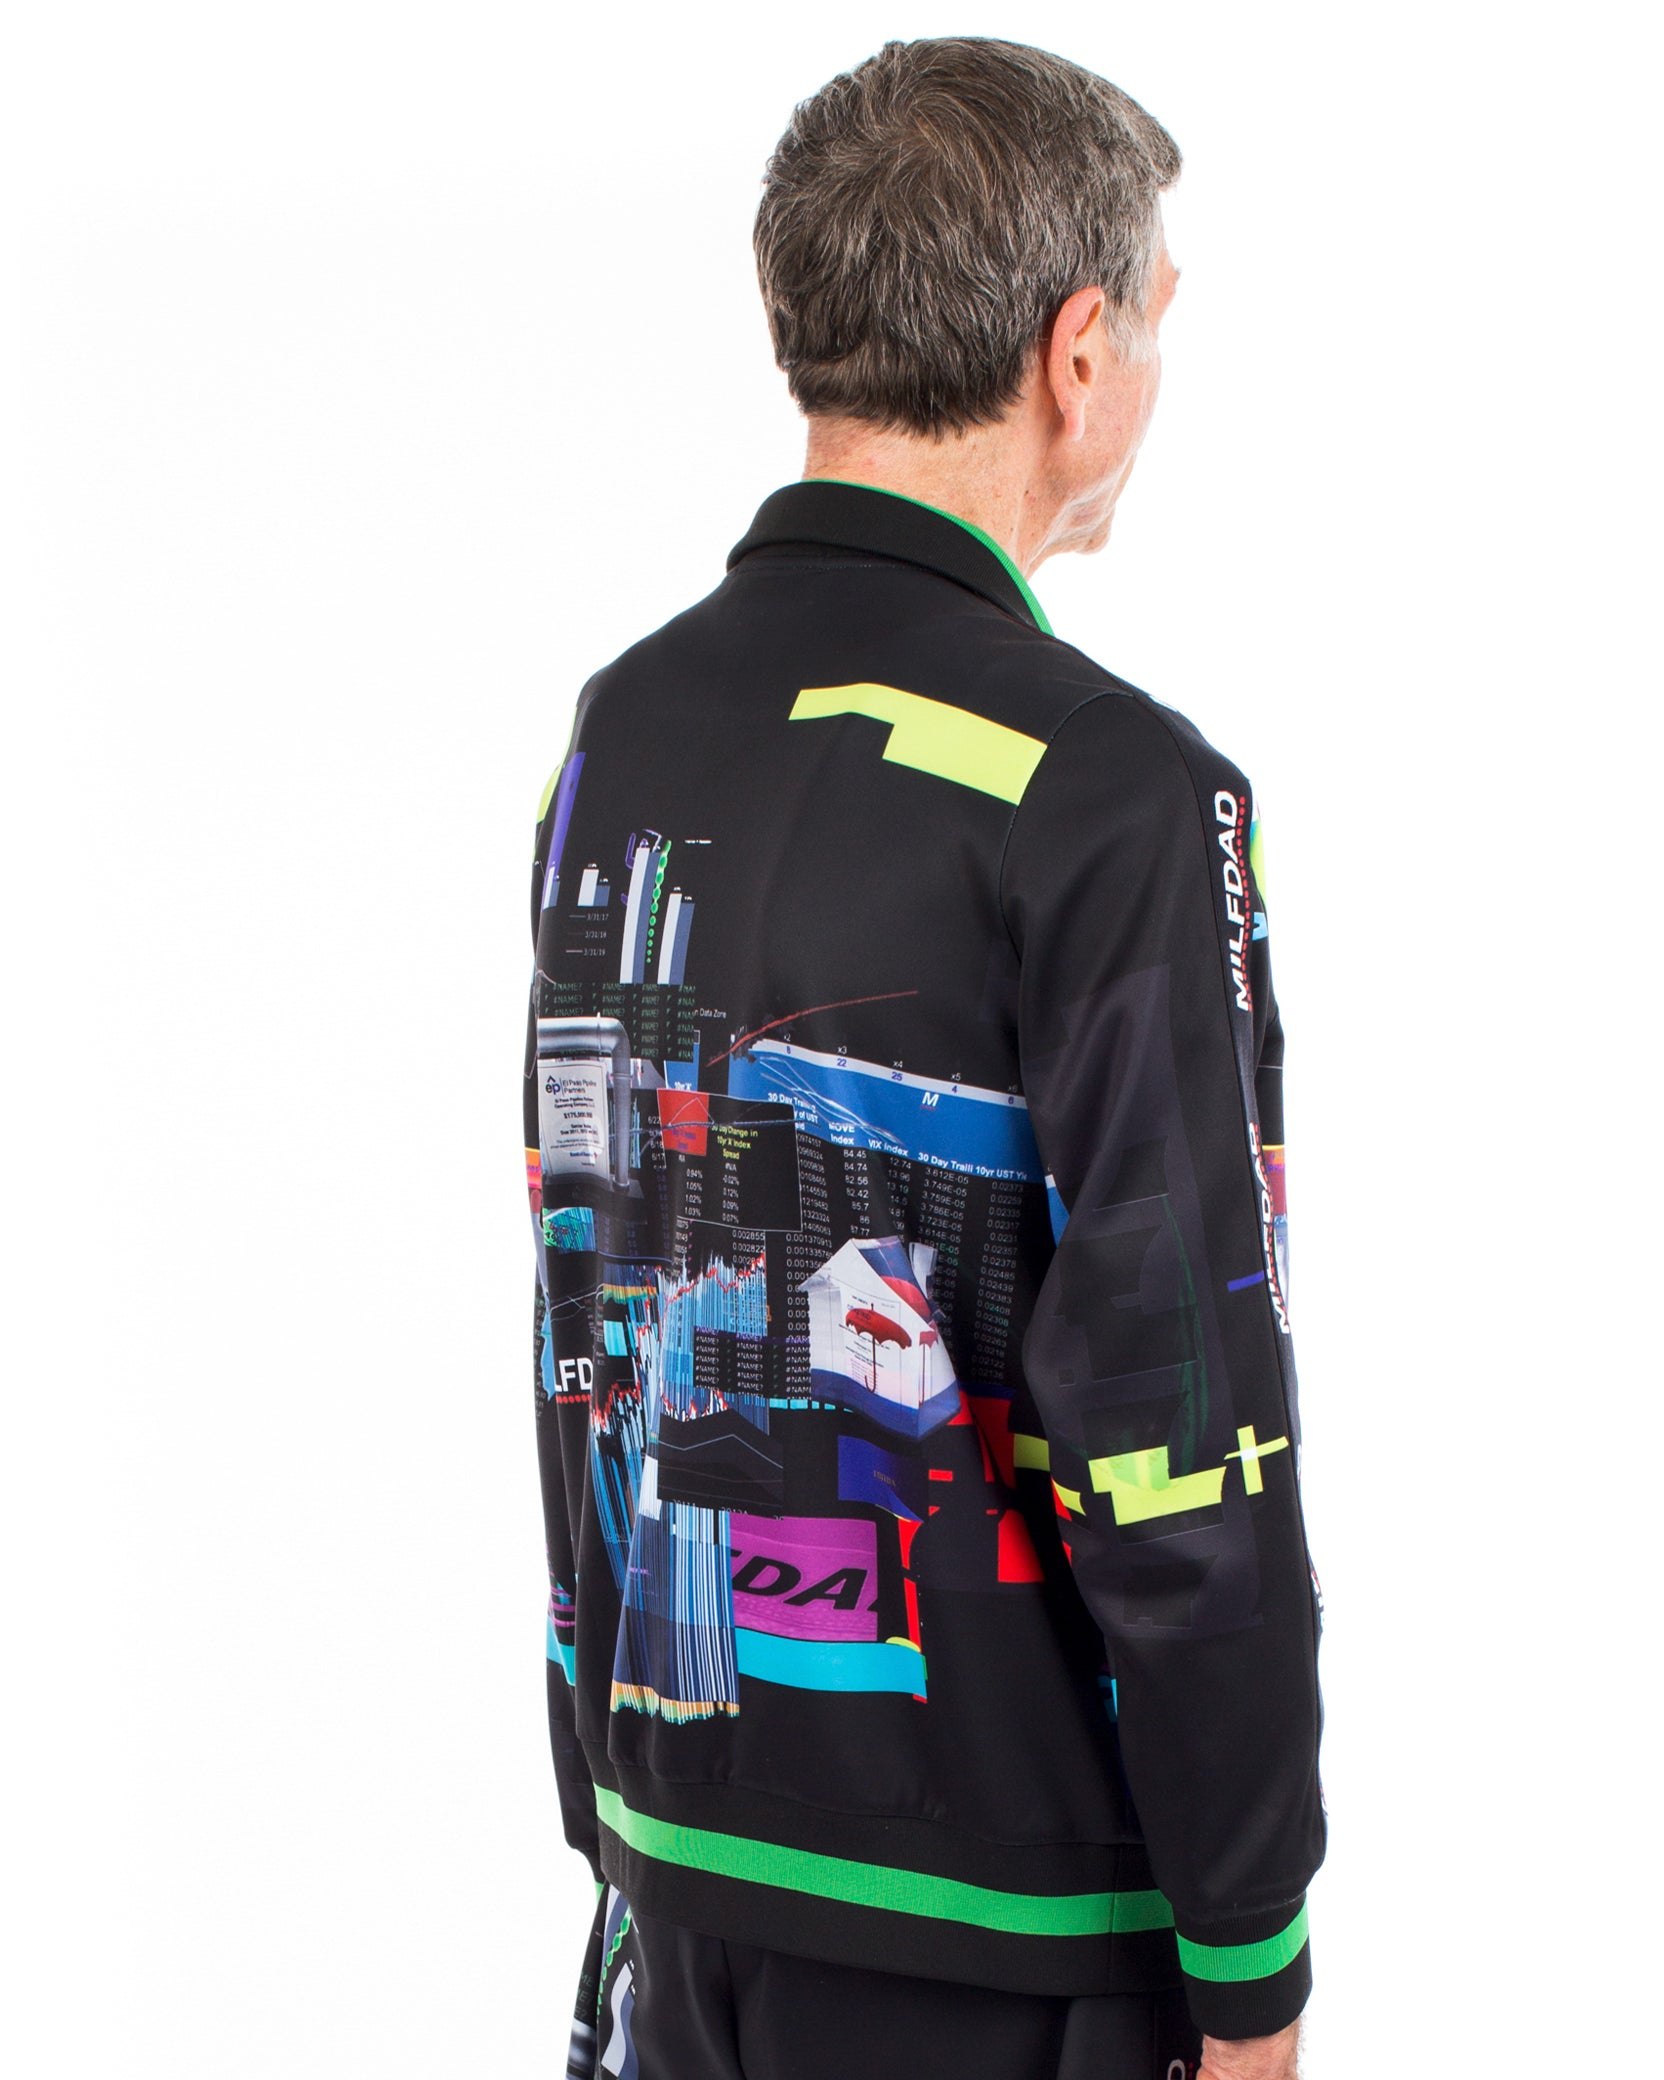 TRACK JACKET - SPREADSHEET / BLACK